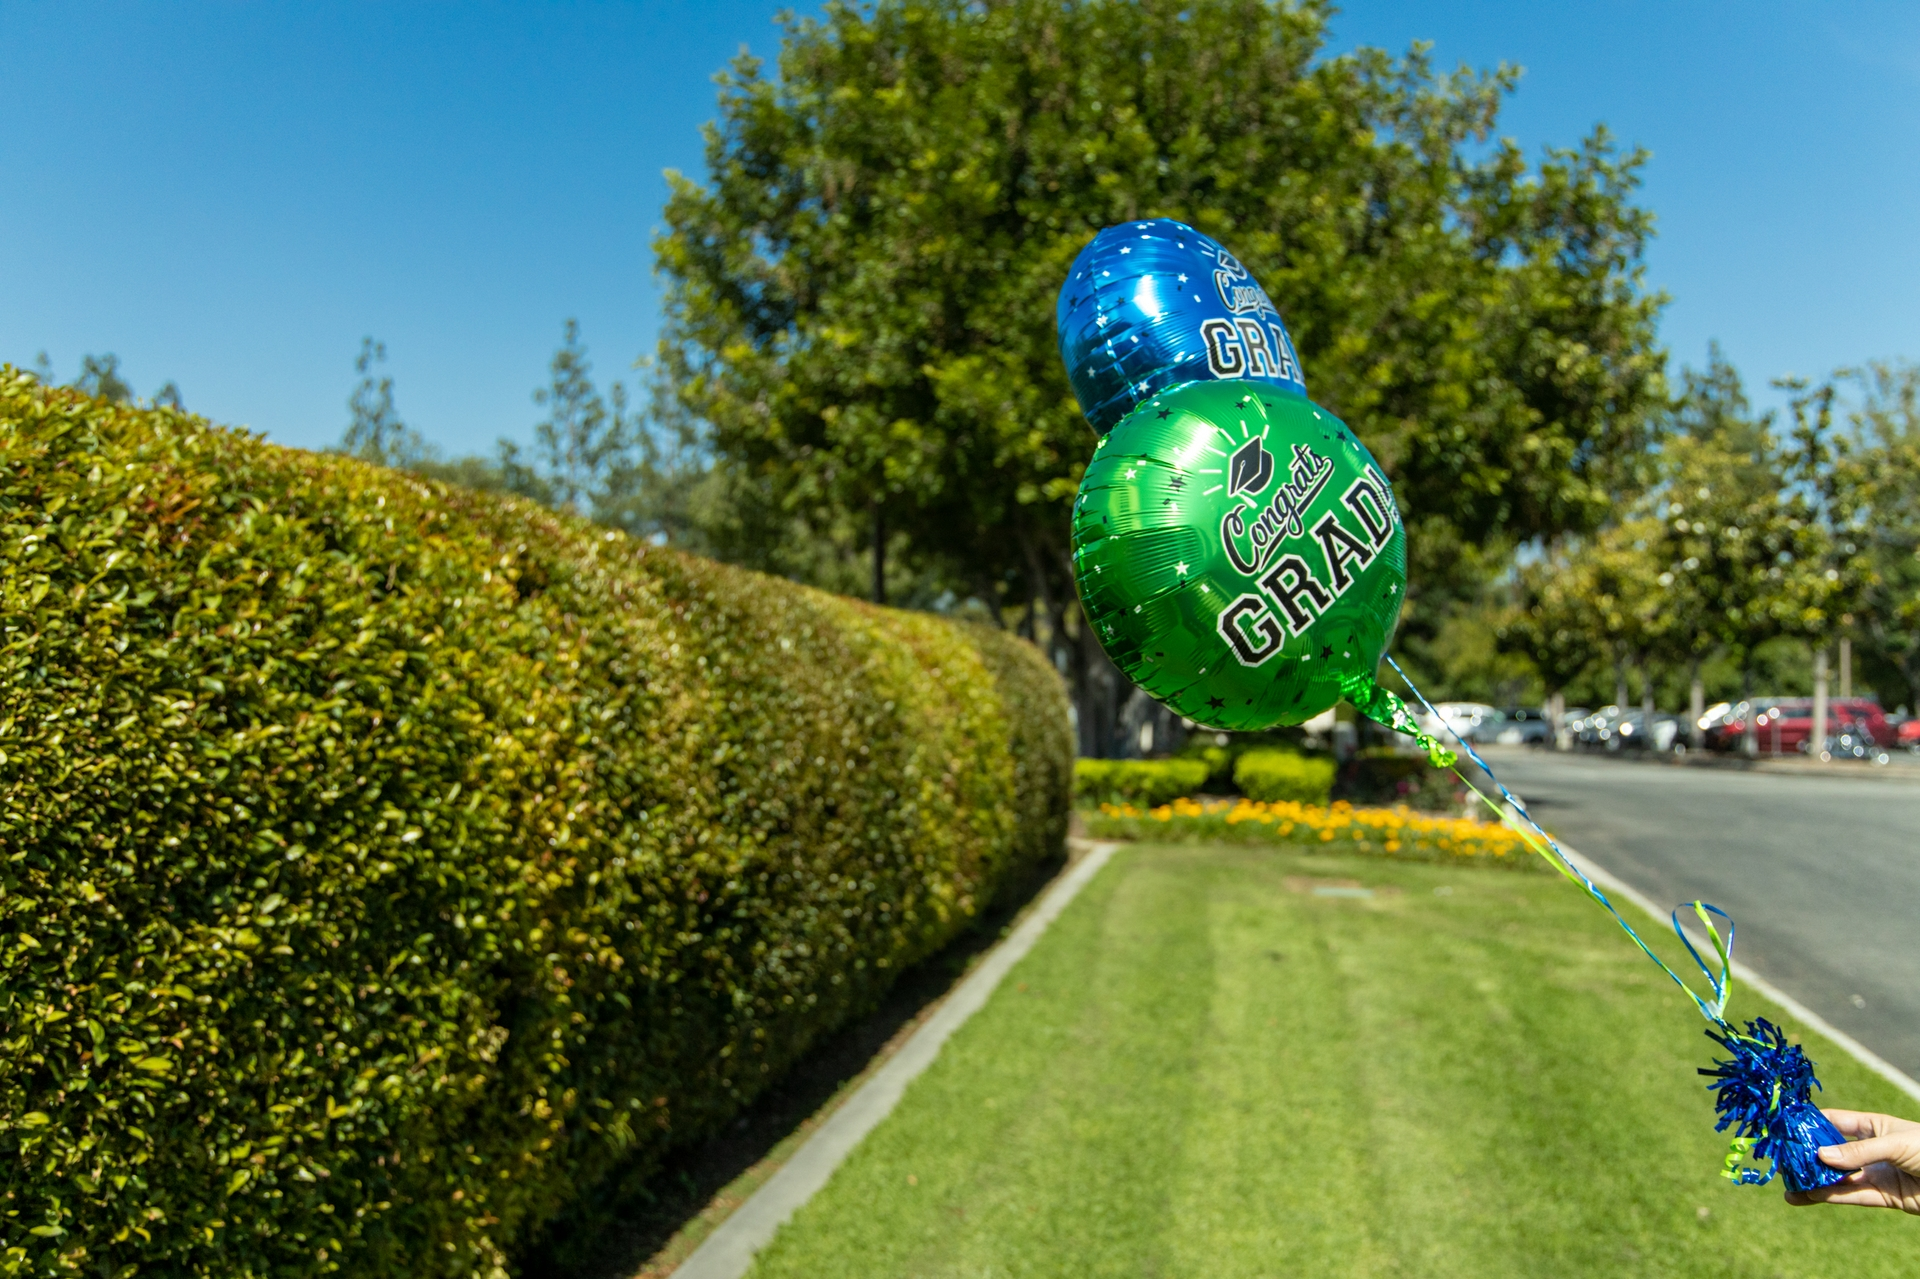 Metallic balloons should always be attached to a weight and never released outdoors, not only because of the electrical safety hazards but also the litter and danger to animals.